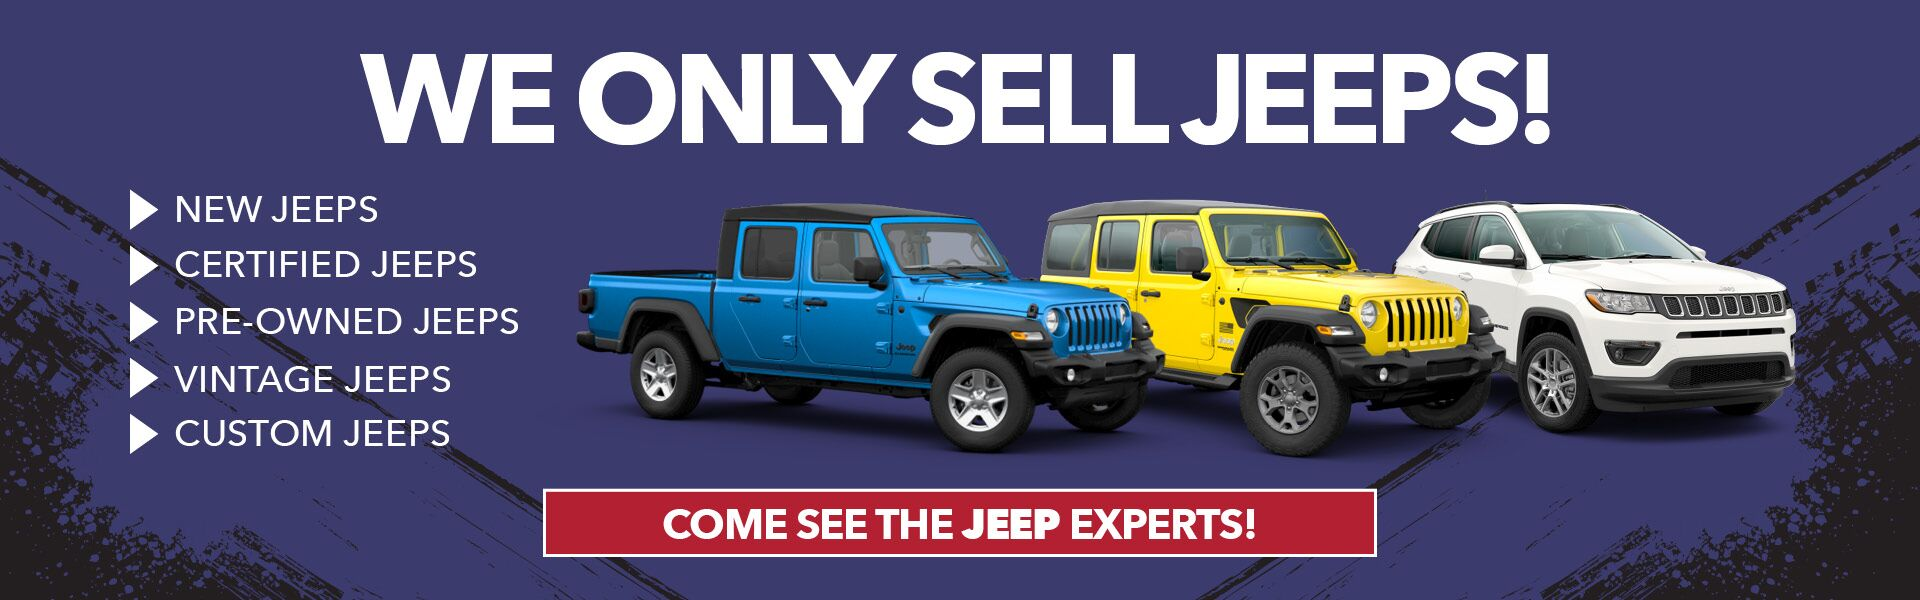 We ONLY sell Jeeps